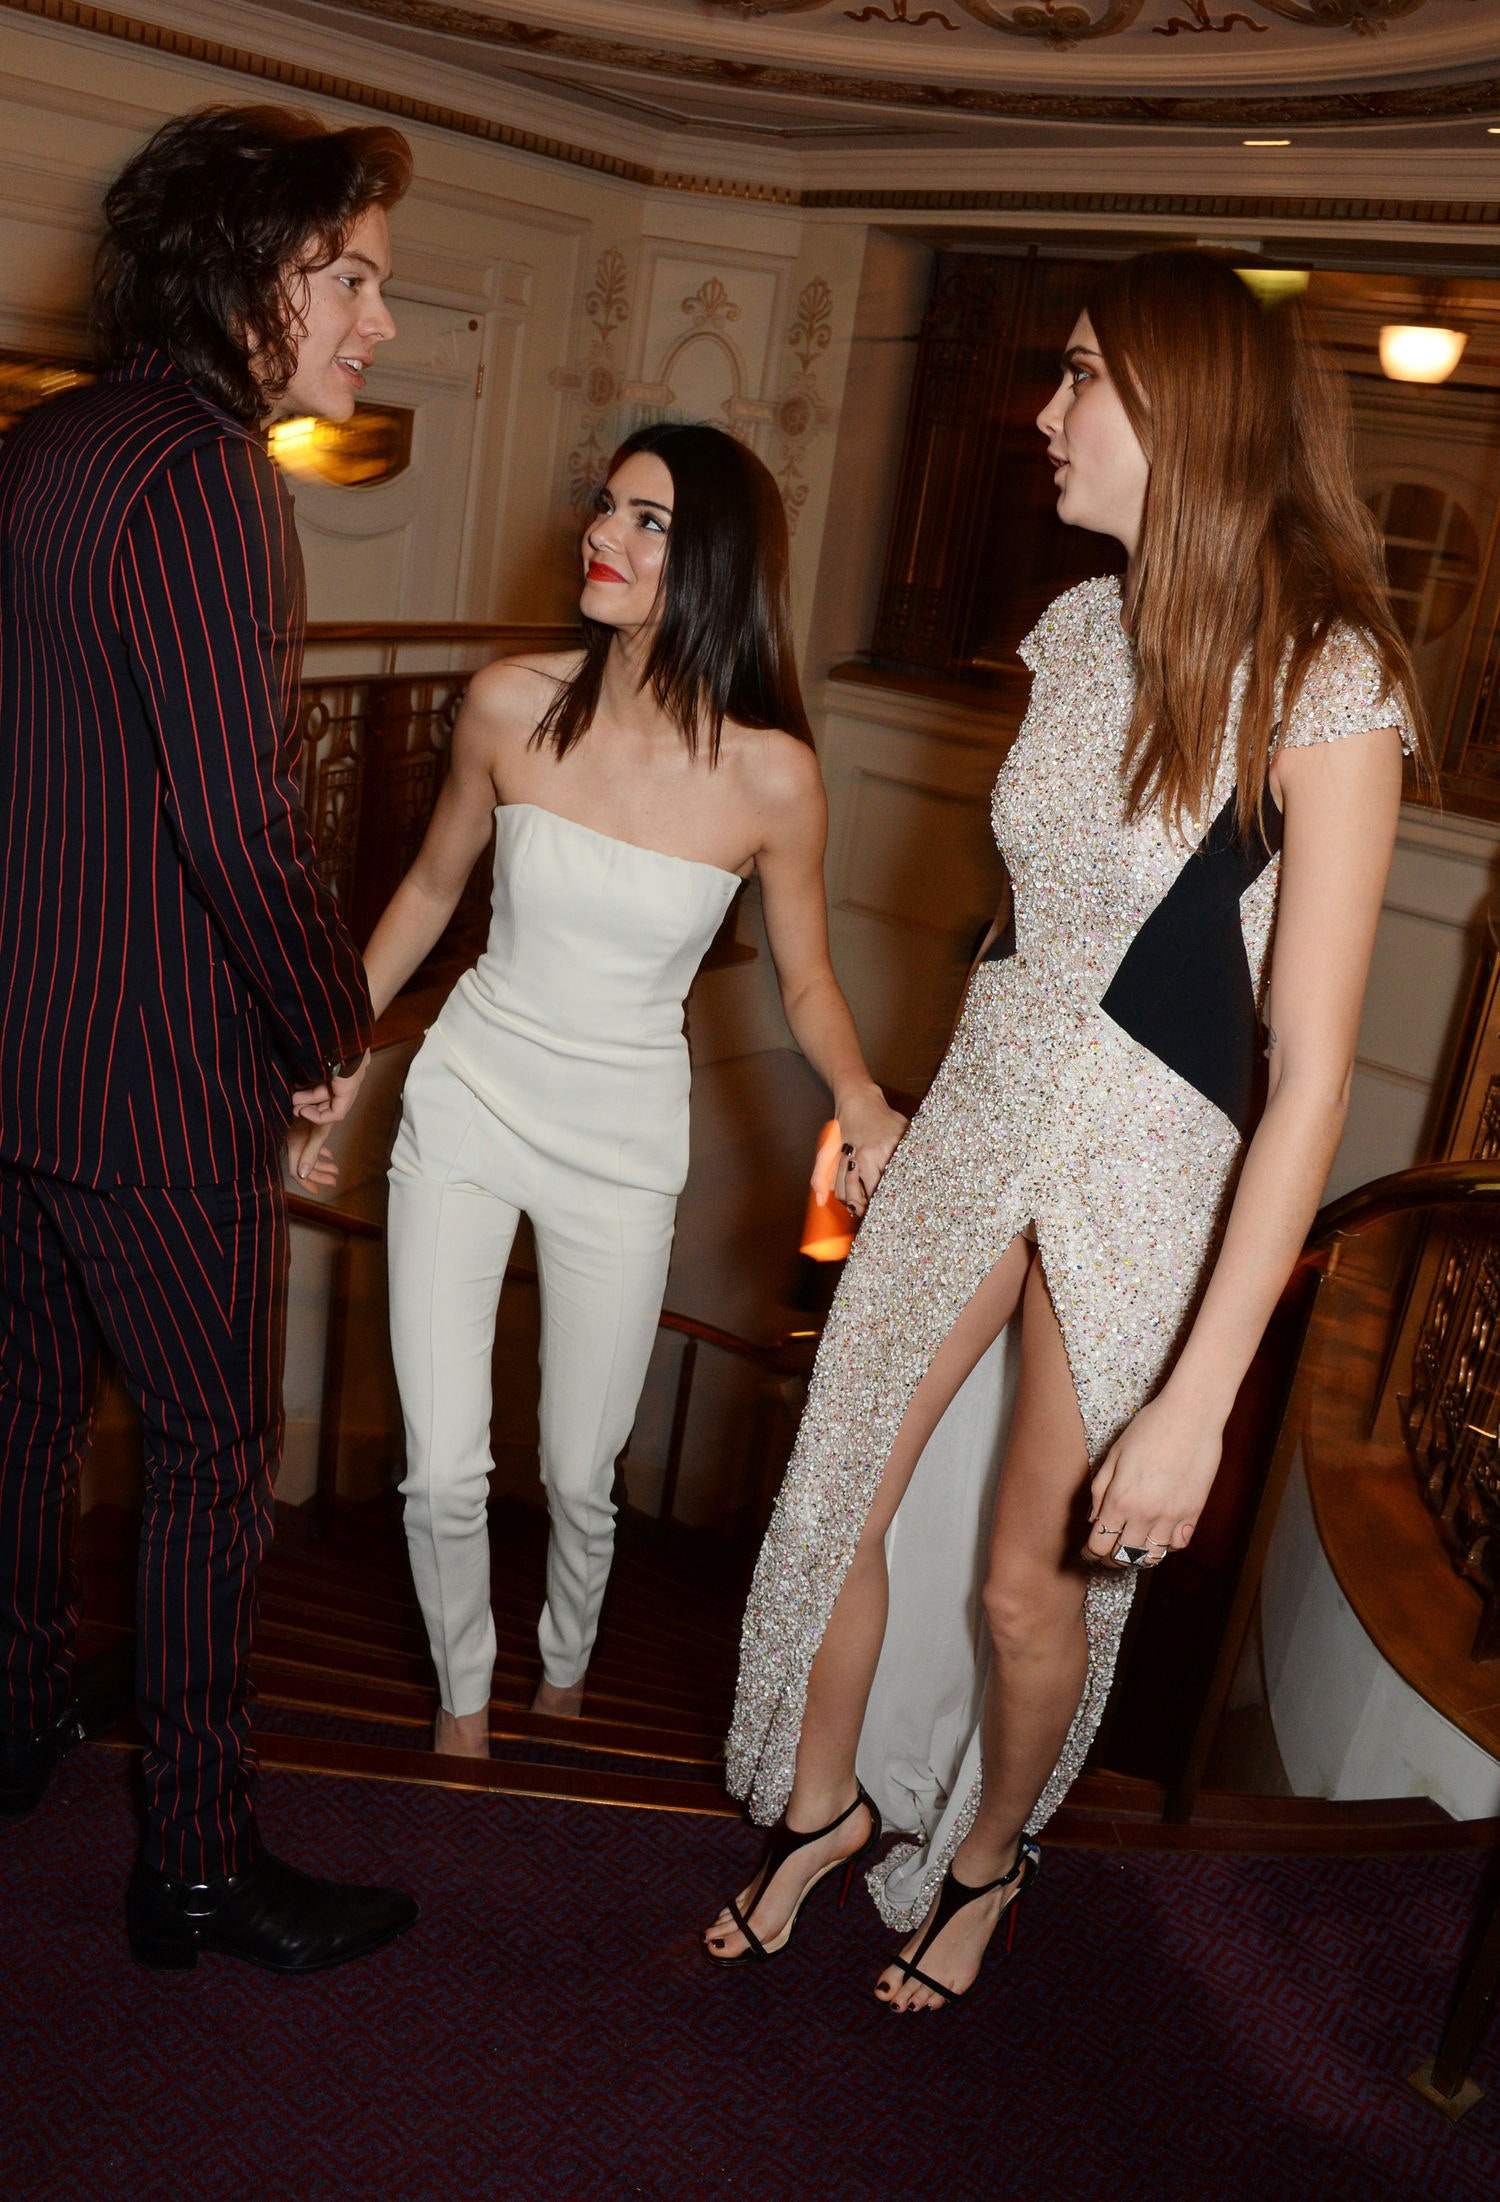 Harry styles and kendall jenner dating